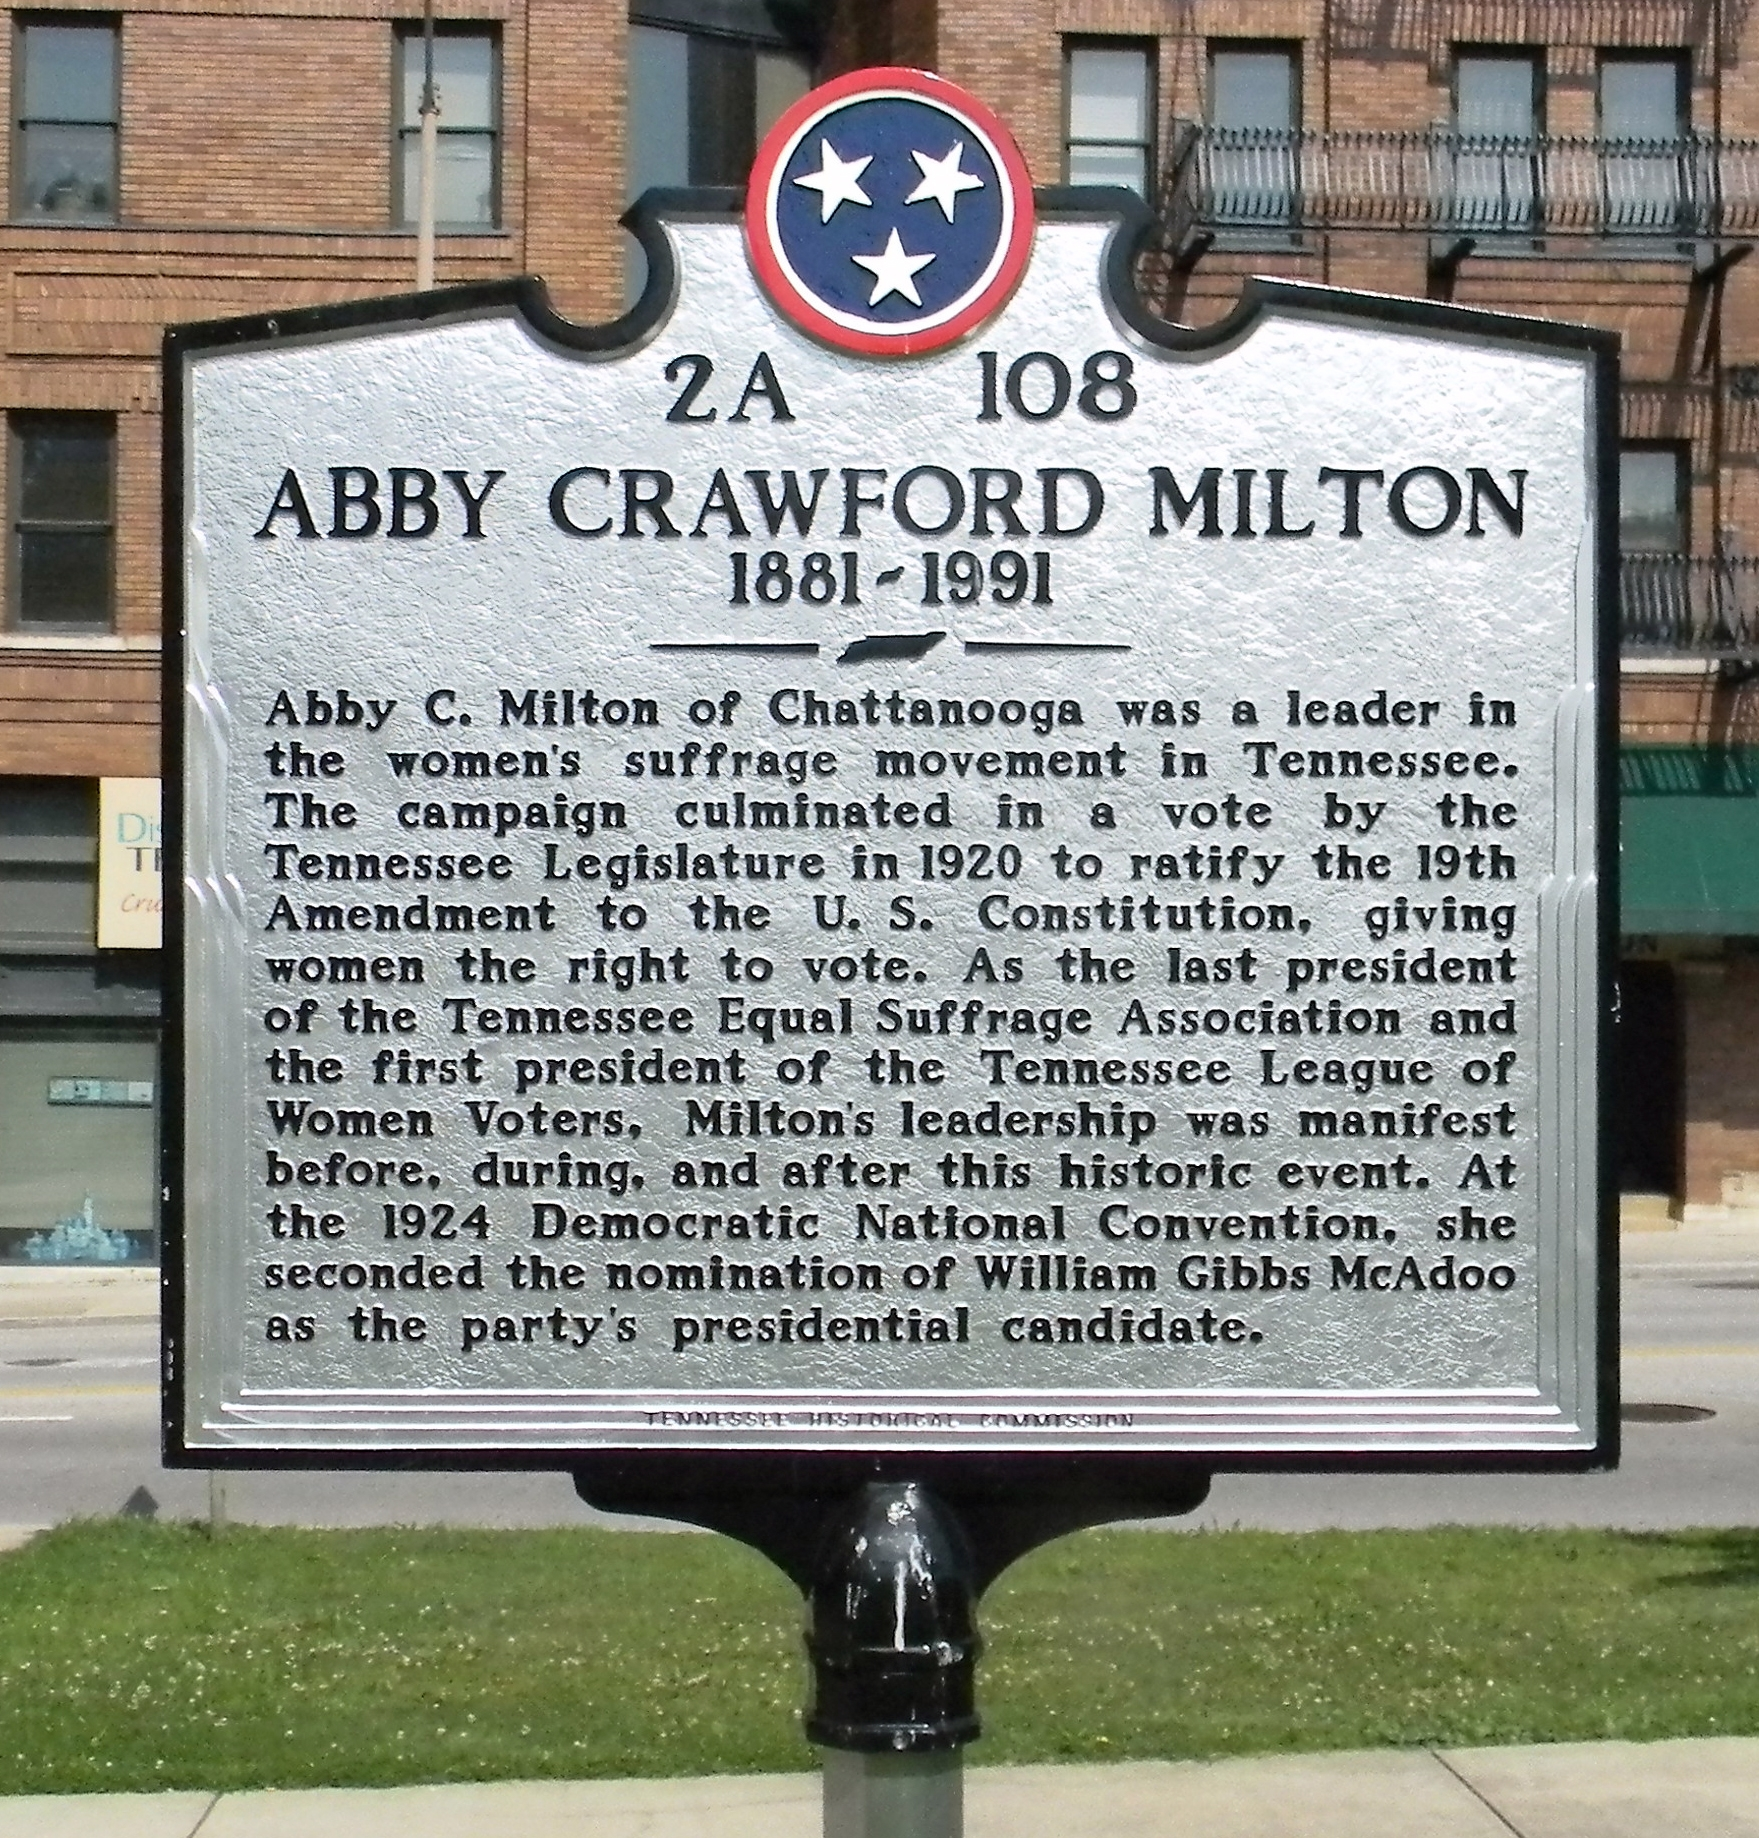 Abby Crawford Milton Marker